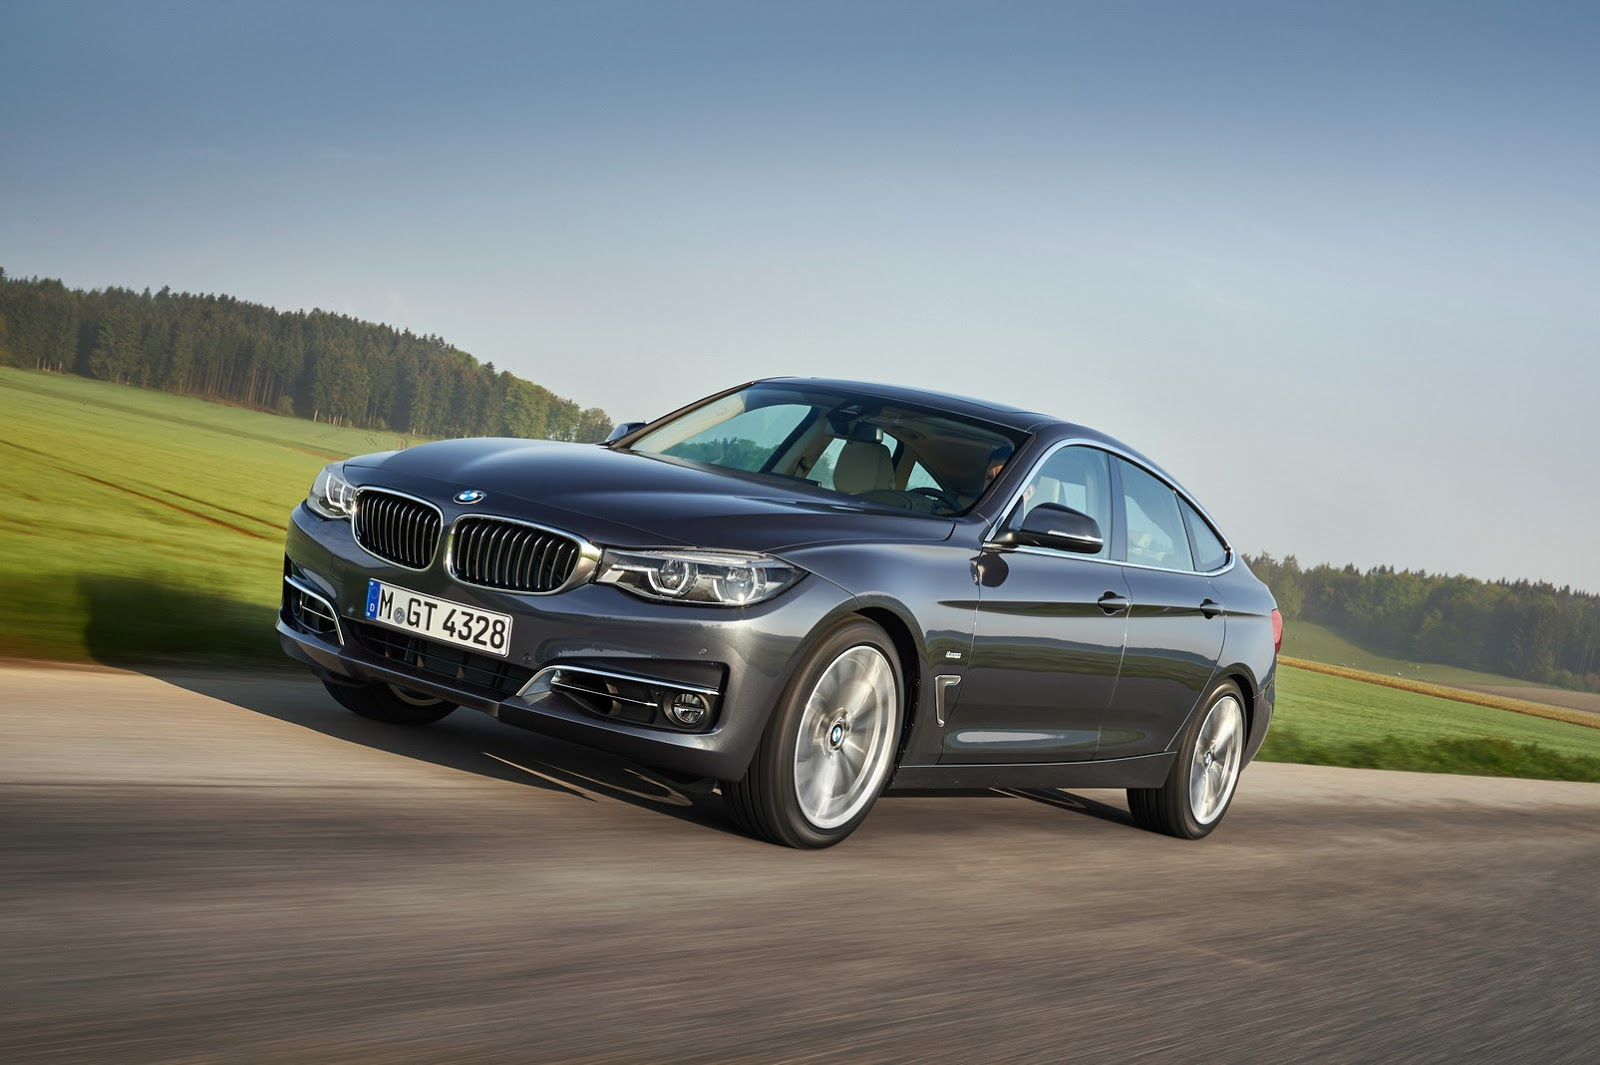 2017 Bmw 3 Series Gran Turismo Facelift Detailed In 60